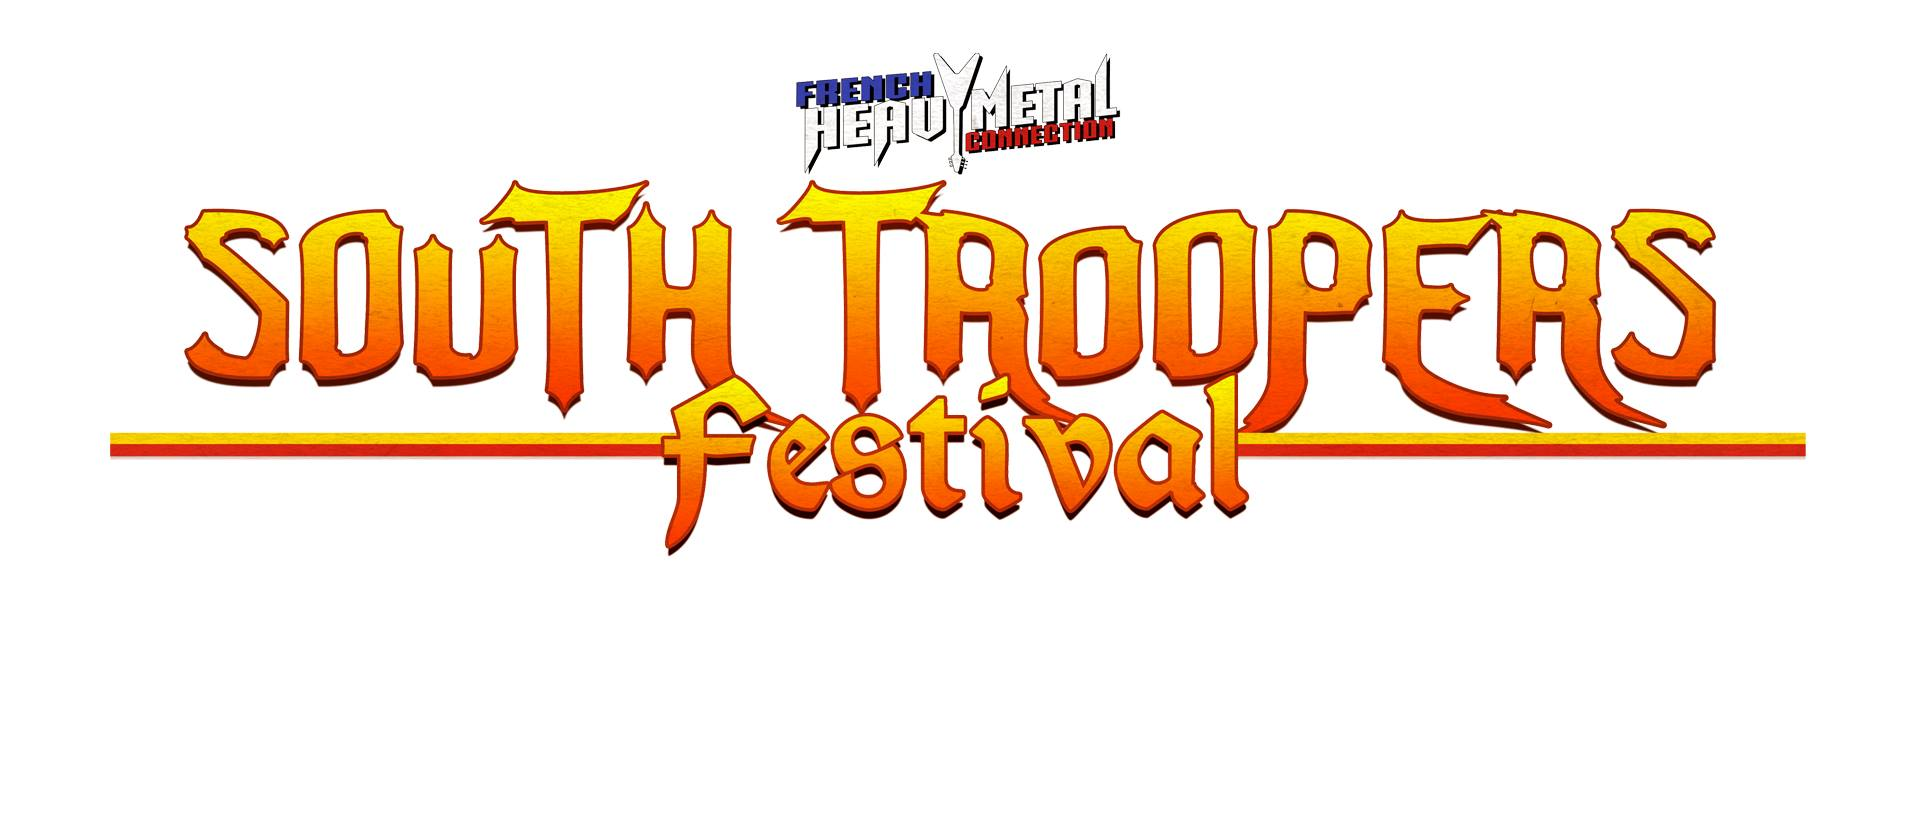 South Troopers Festival 2018 à Marseille 21544110